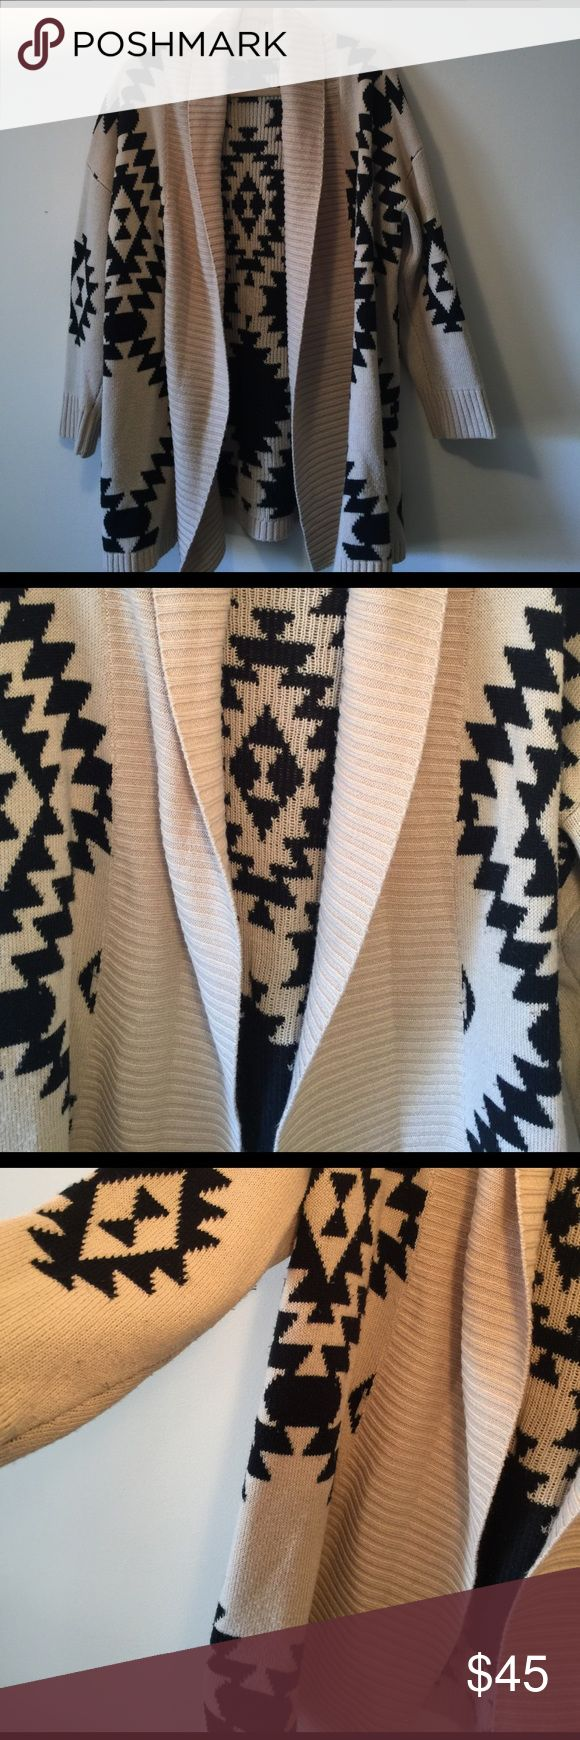 VIP sz L beige/black aztec long cardigan Super cozy and trendy aztec print beige and black long warm cardigan. Size large VIP company. Would look so cute over black leather pants or leggings and even more adorable with some skinny jeans. Wonderful for skiing weather or just a day on the town. Even throw over pajamas. VIP Sweaters Cardigans